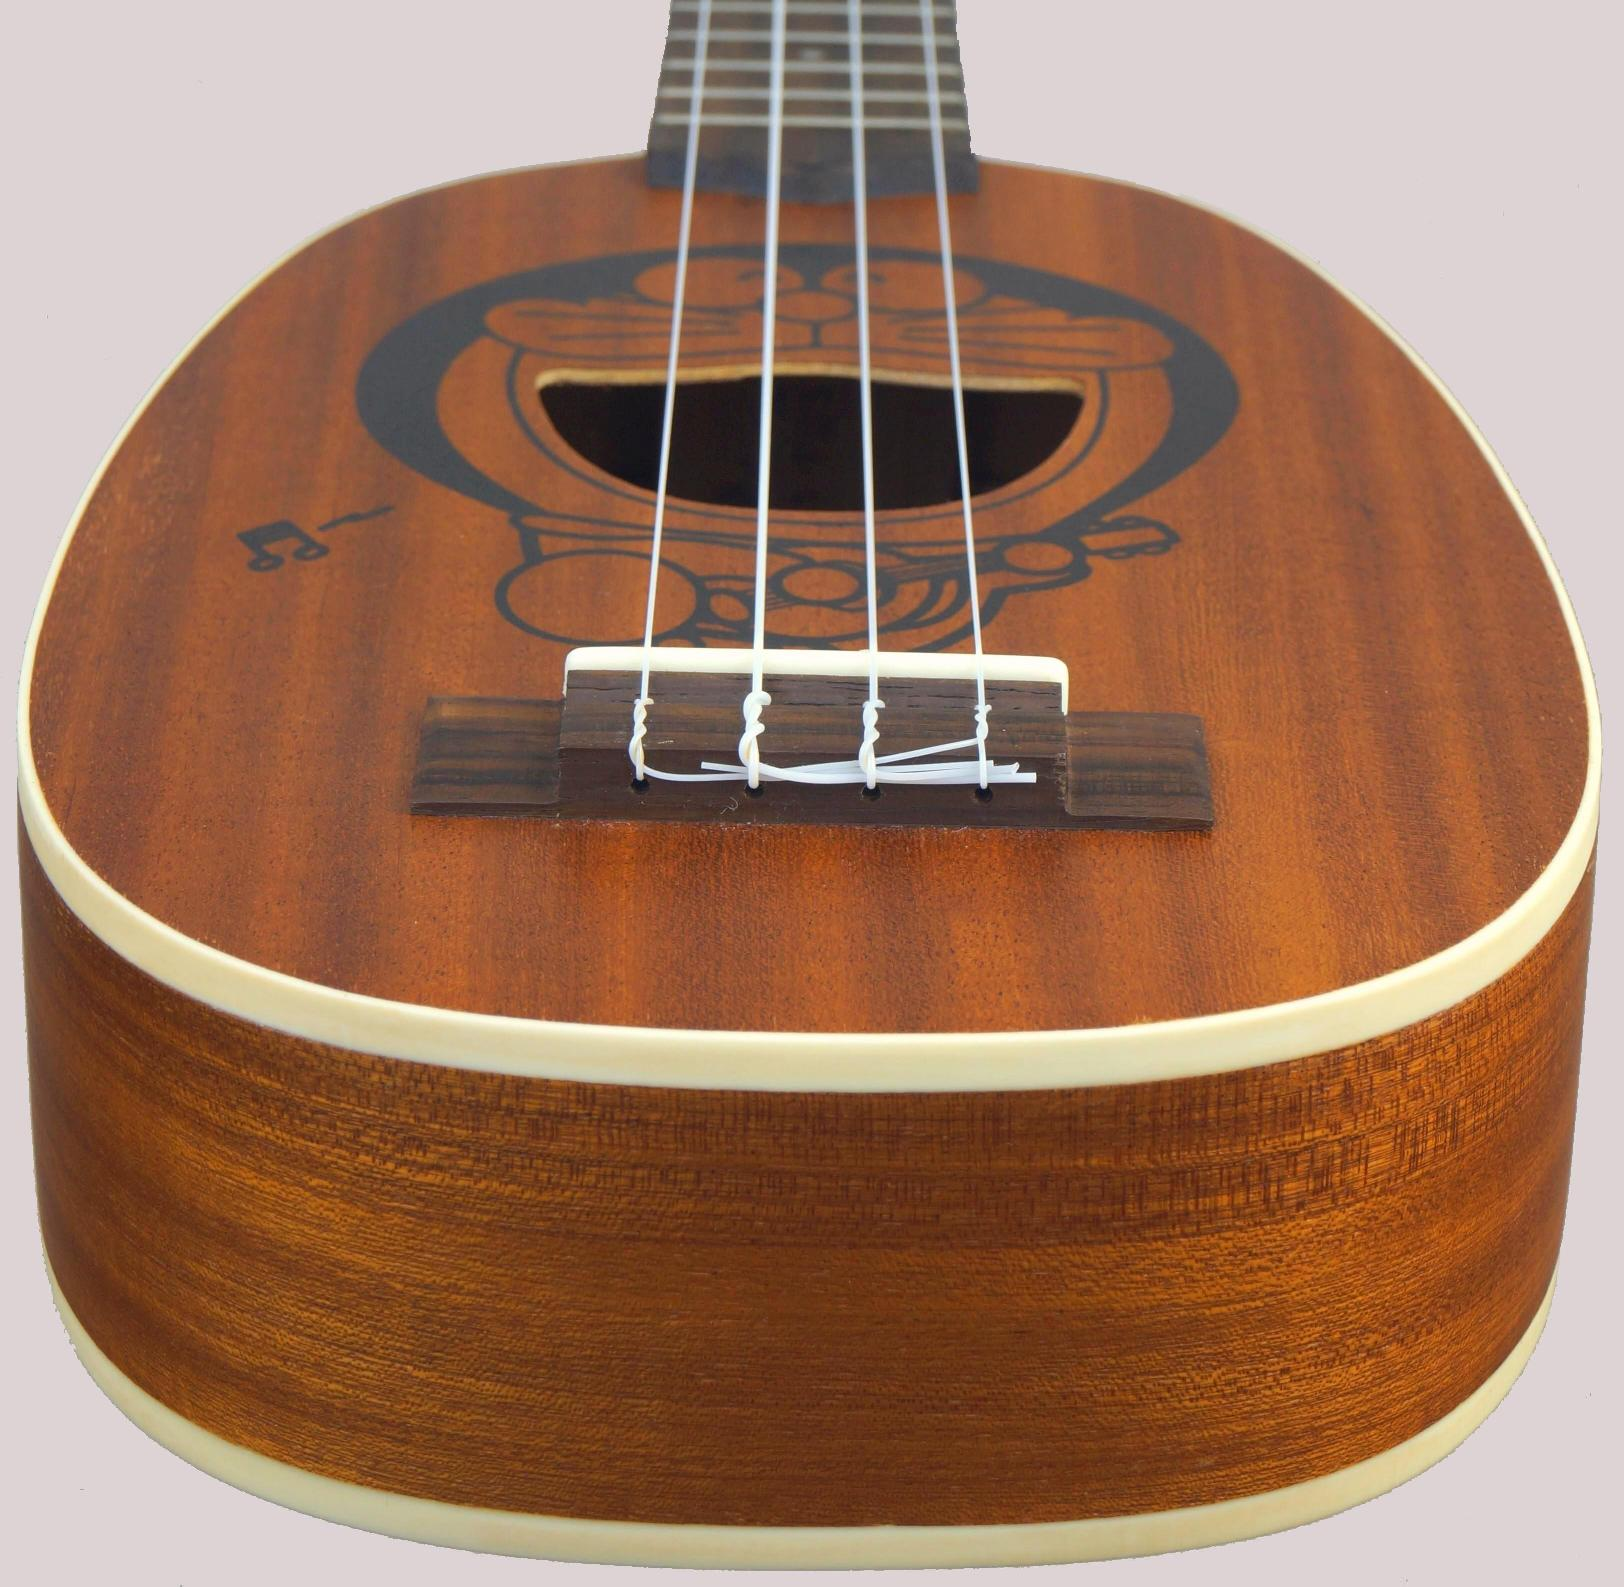 laminate pineapple soprano ukelele back